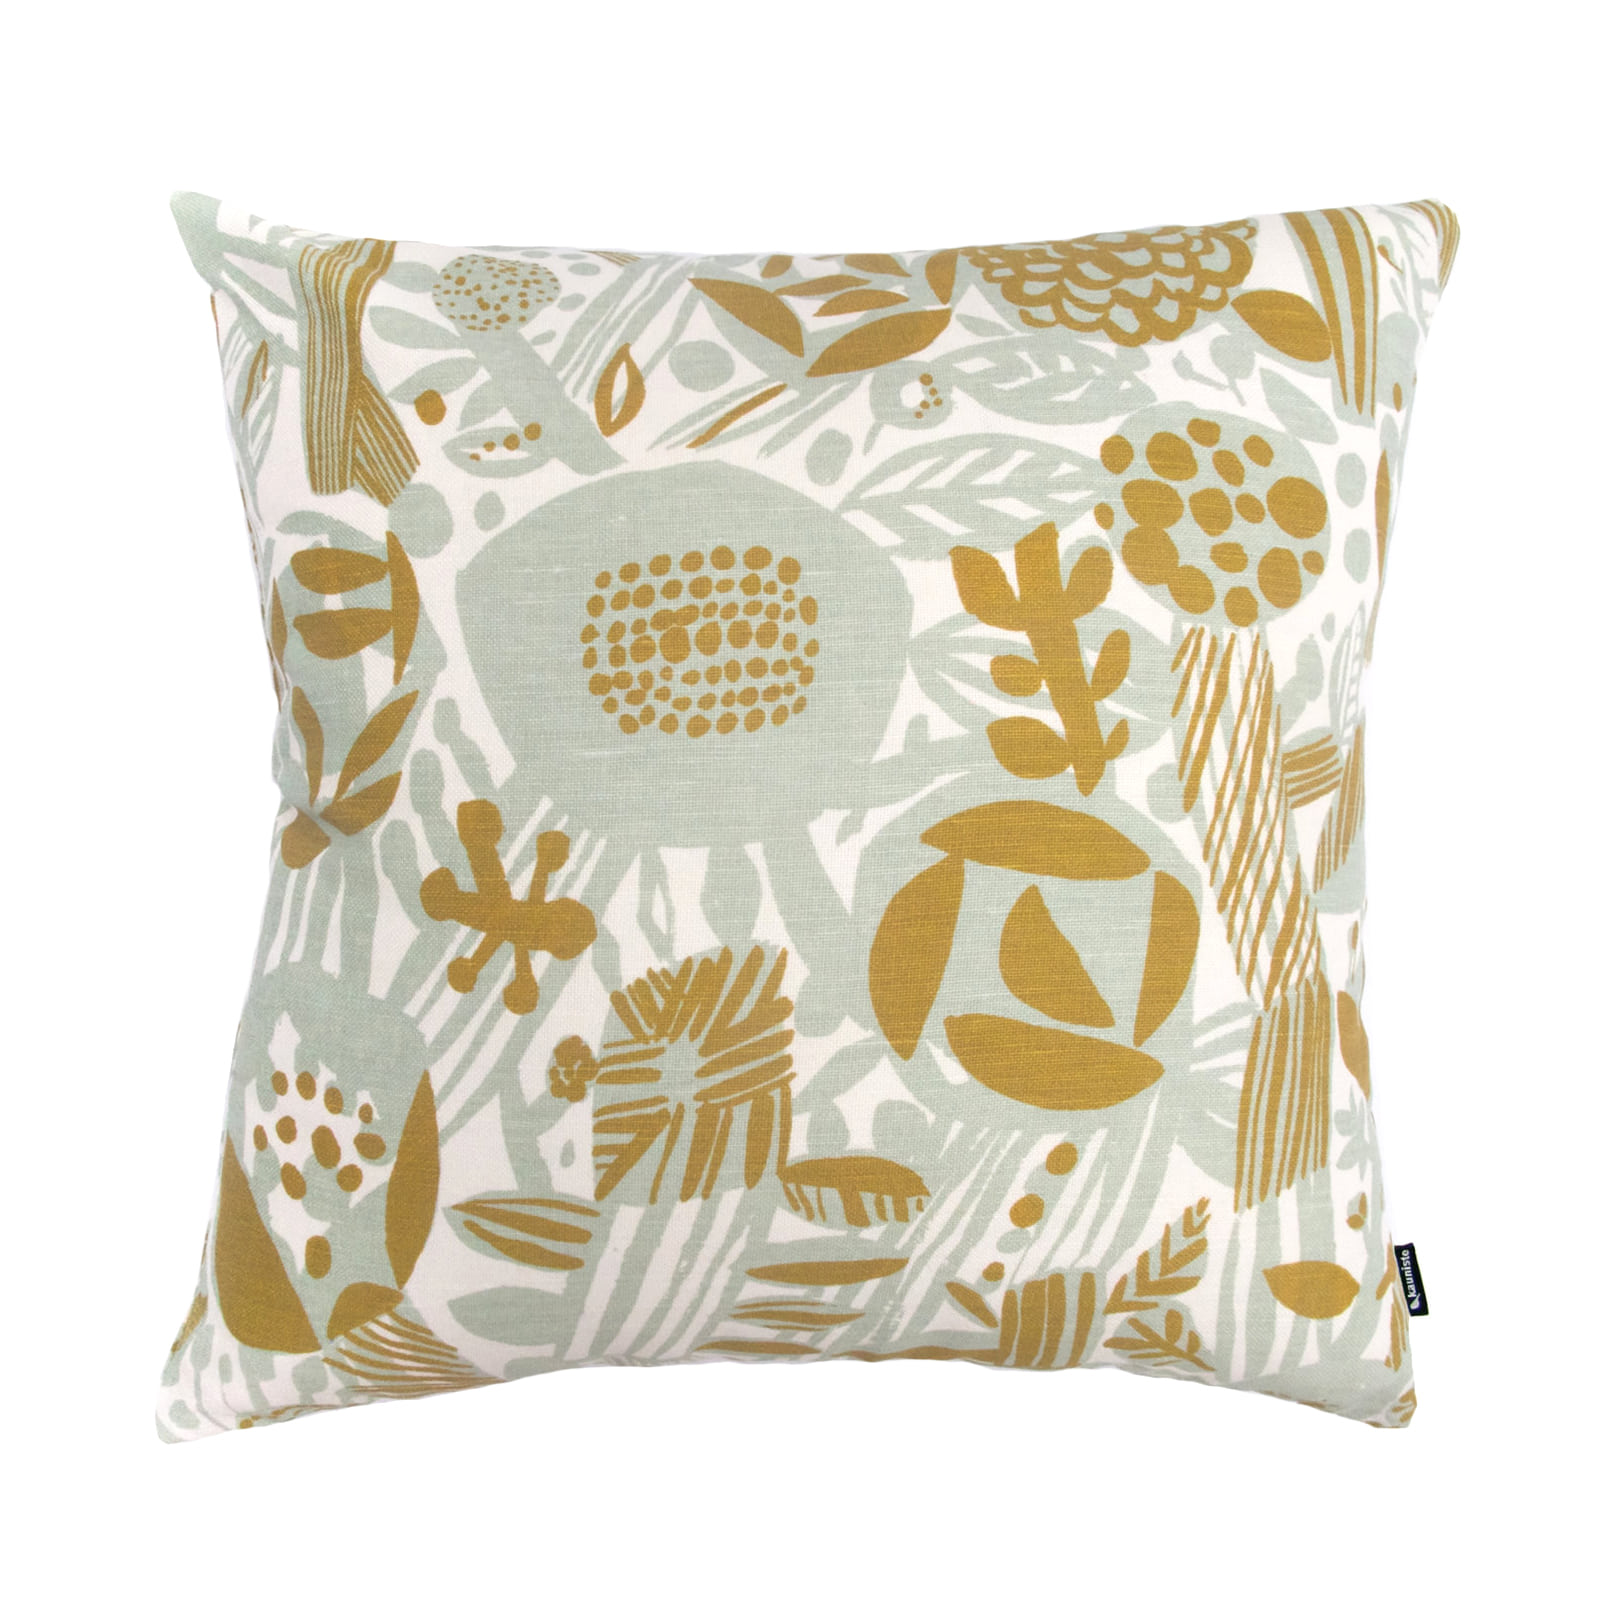 Potpourri green Cushion cover